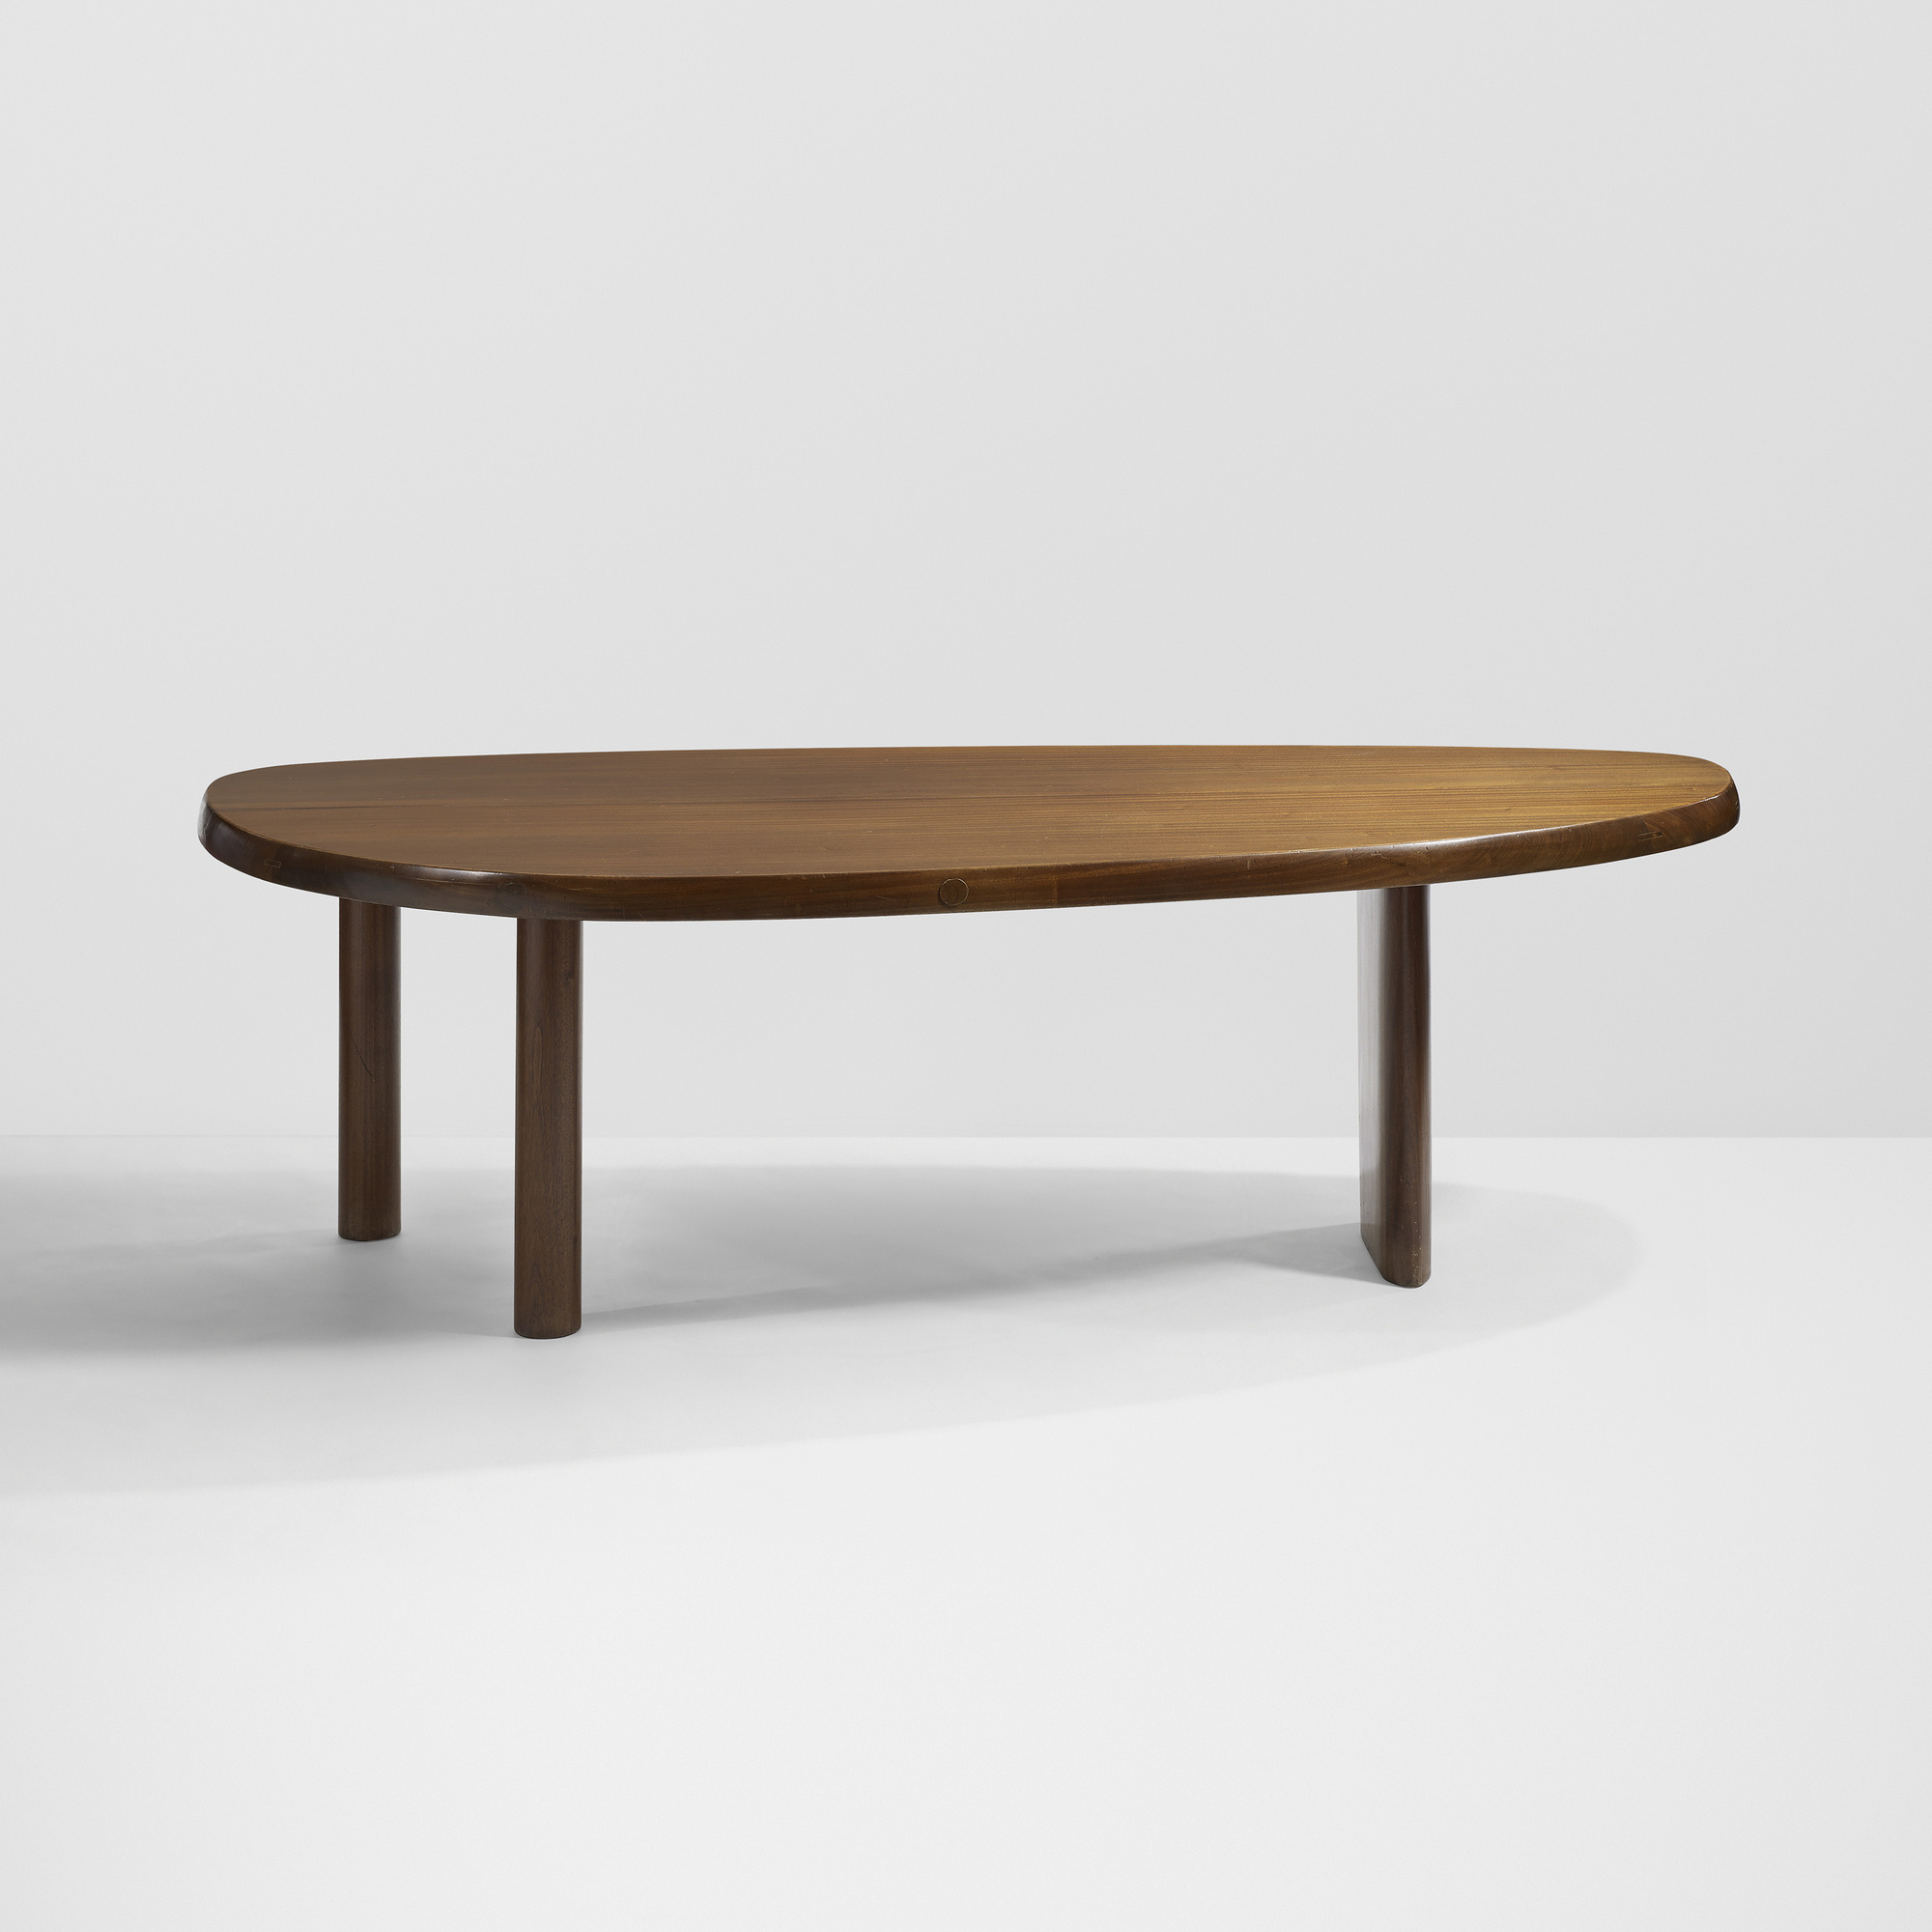 9: Charlotte Perriand / Free Form Dining Table (1 Of 3)